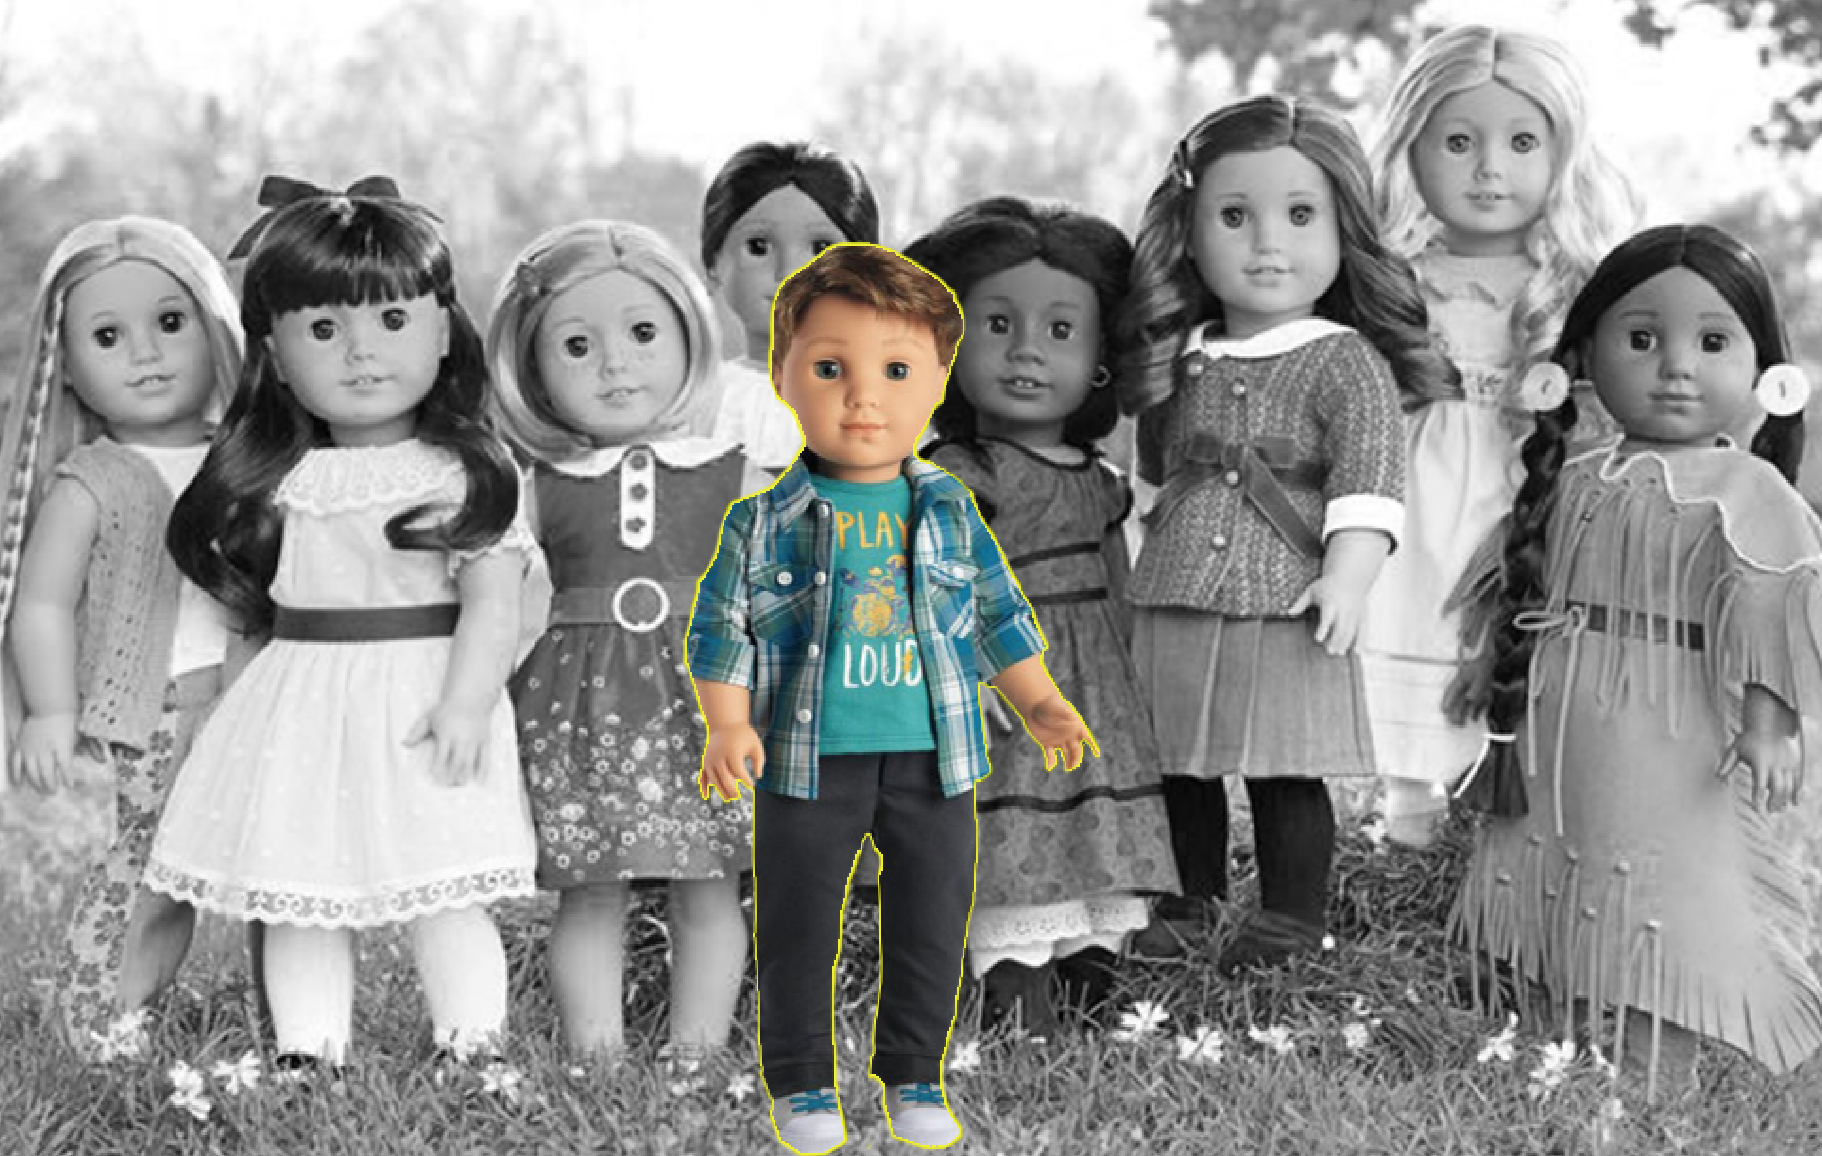 Introducing The Next American Girl Doll:  A Boy